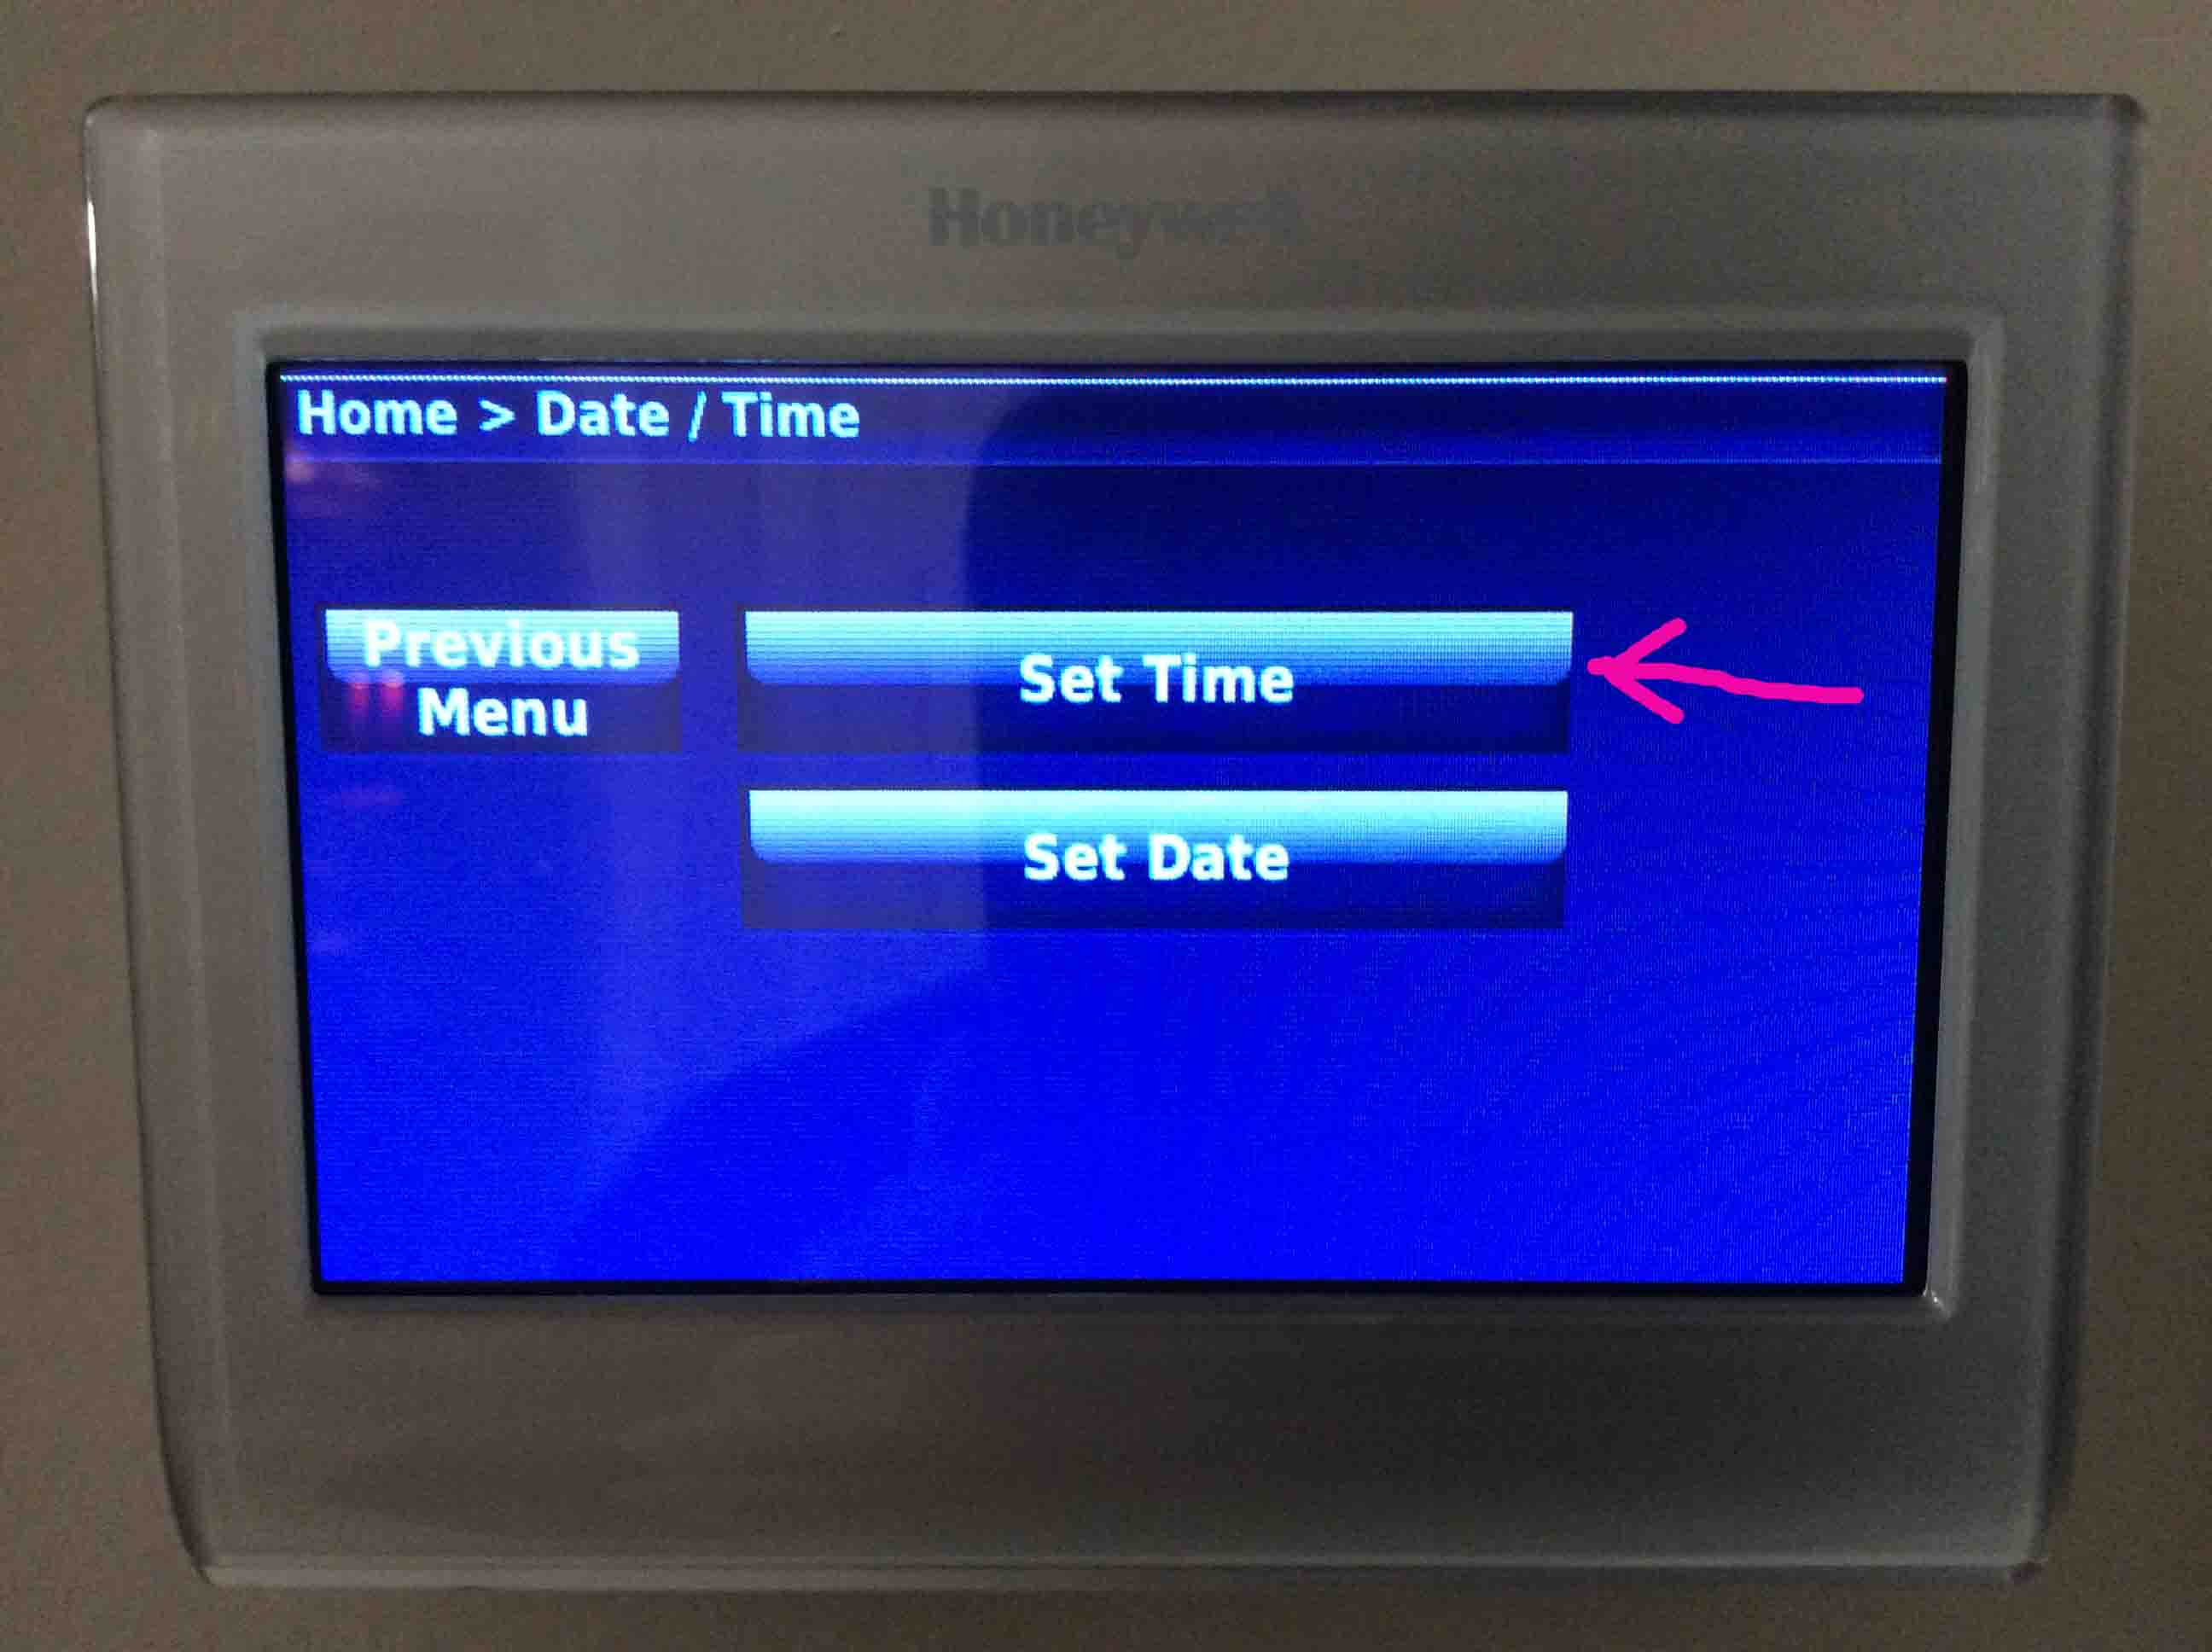 Change Time and Day on Honeywell RTH9580WF Thermostat, How